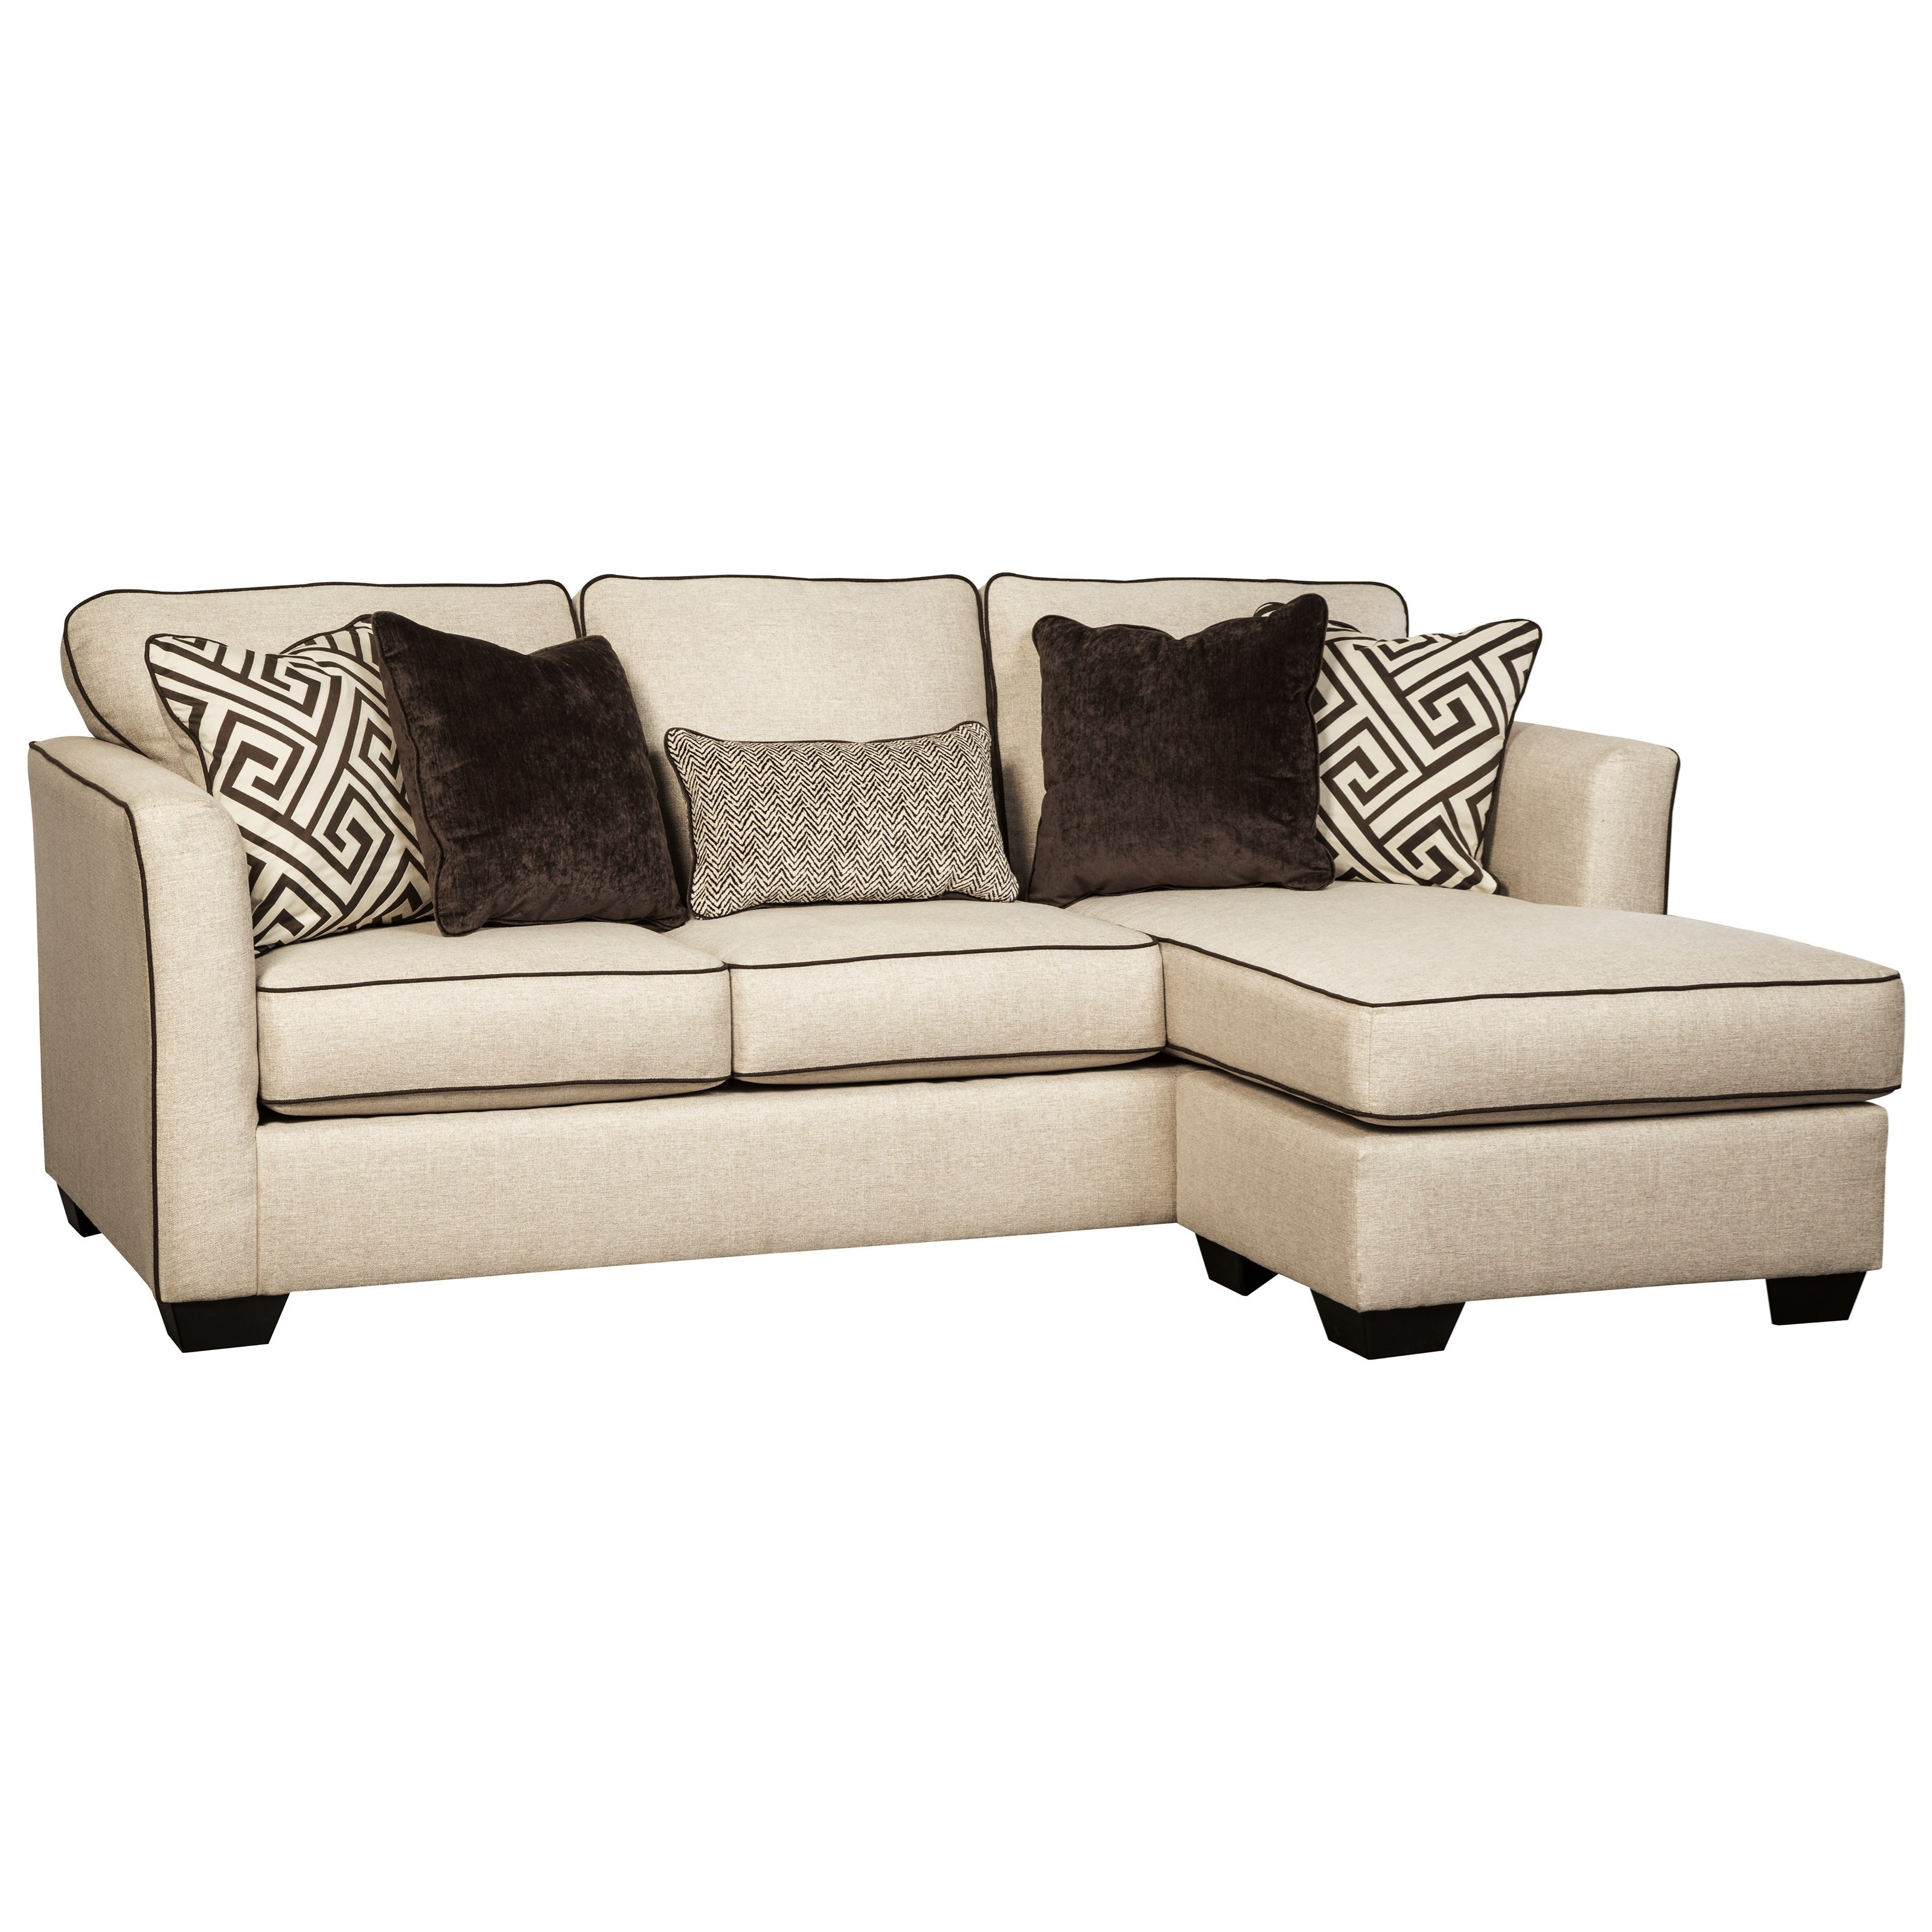 Benchcraft by ashley carlinworth contemporary queen sofa Sofawelt outlet